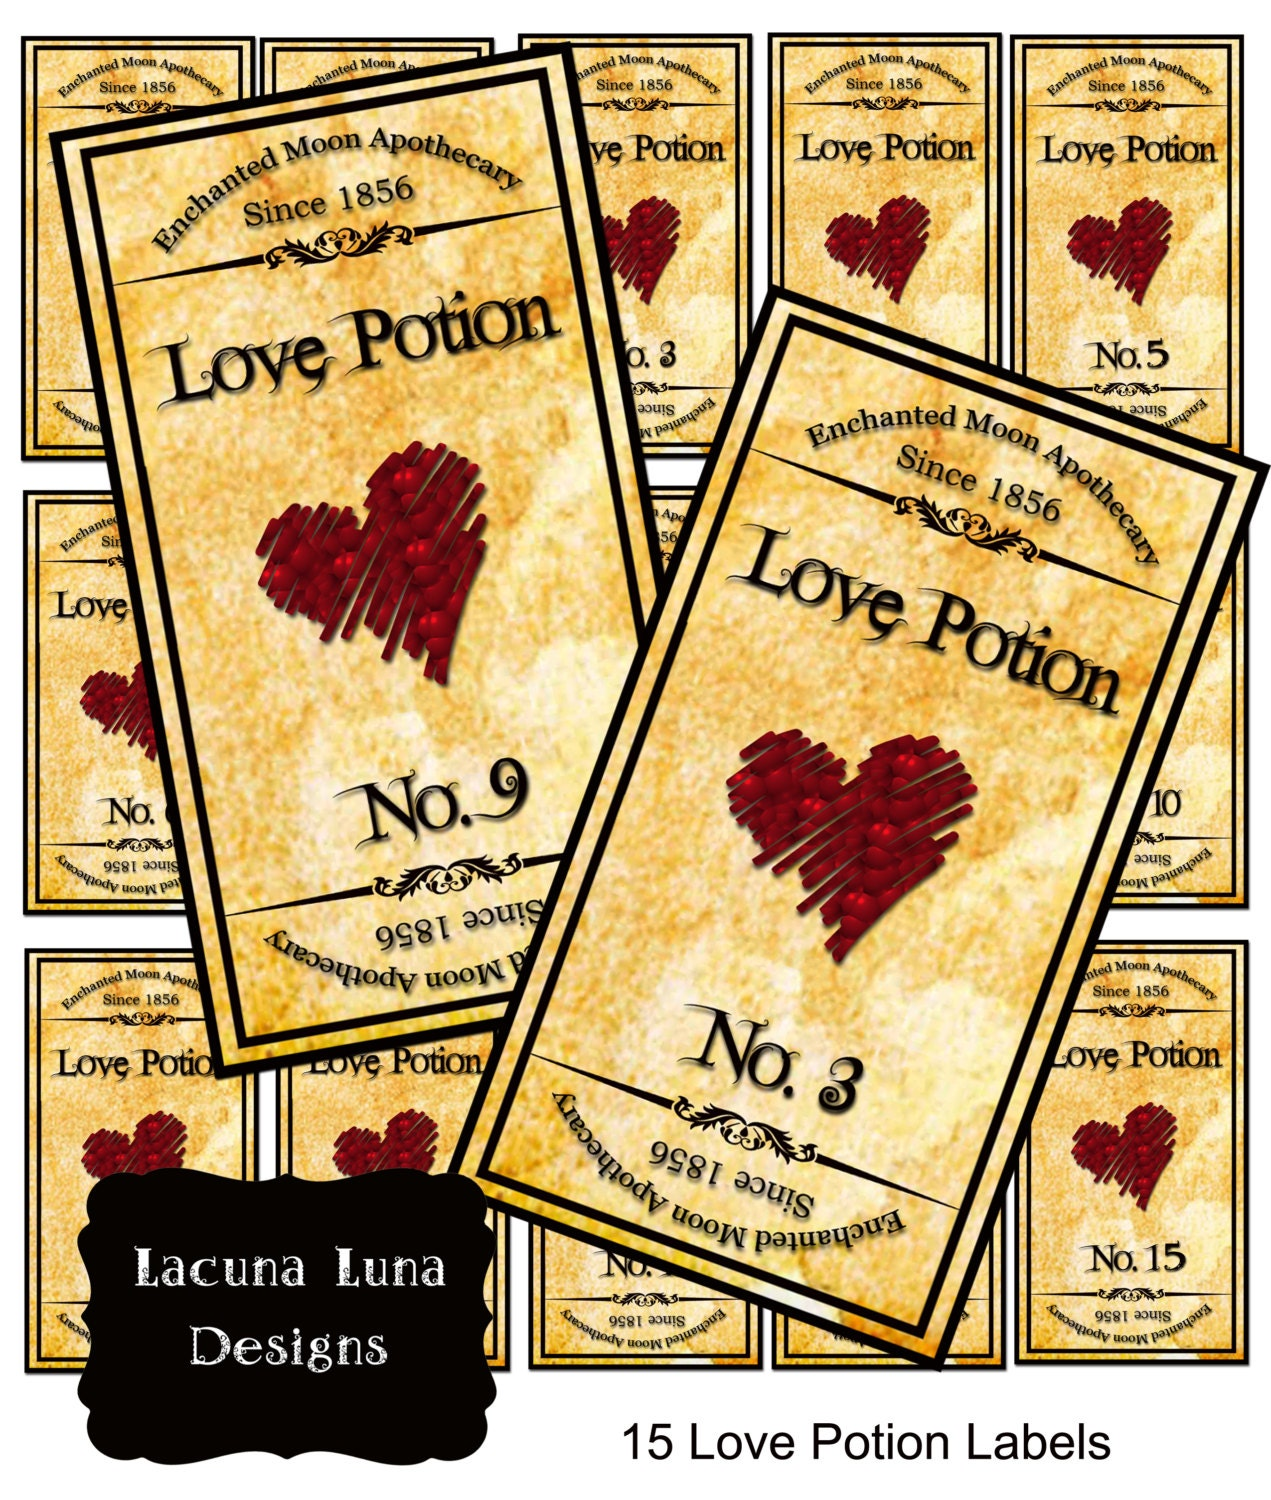 Love Potion Drink Labels: 15 Love Potion Apothecary Bottle Jar Labels By